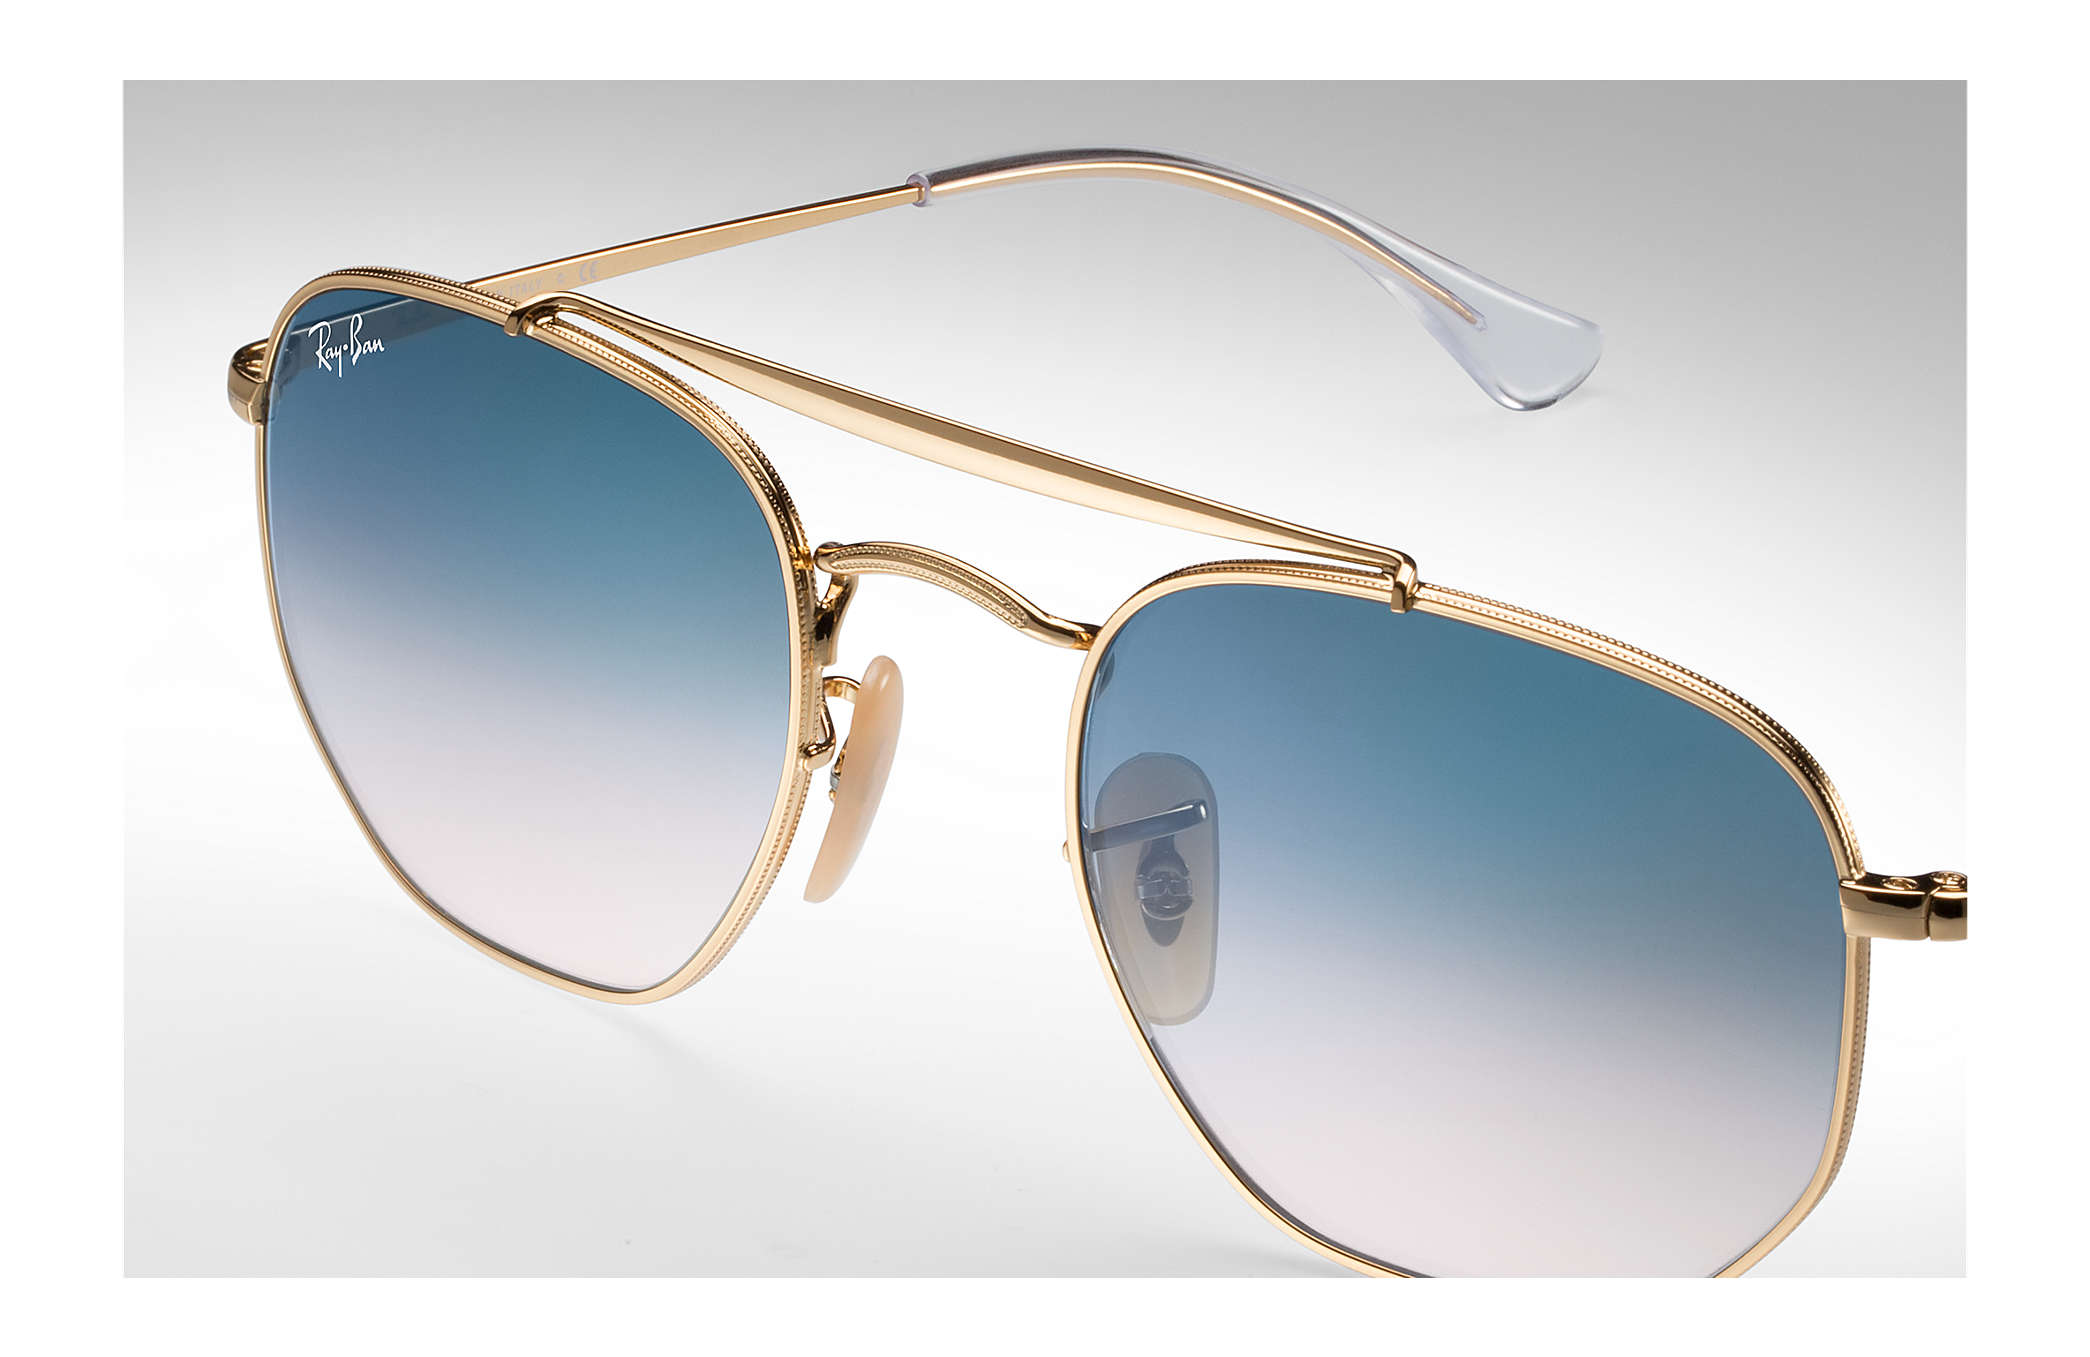 4cfe9d56a2 Ray-Ban Marshal RB3648 Gold - Metal - Light Blue Lenses - 0RB3648001 ...